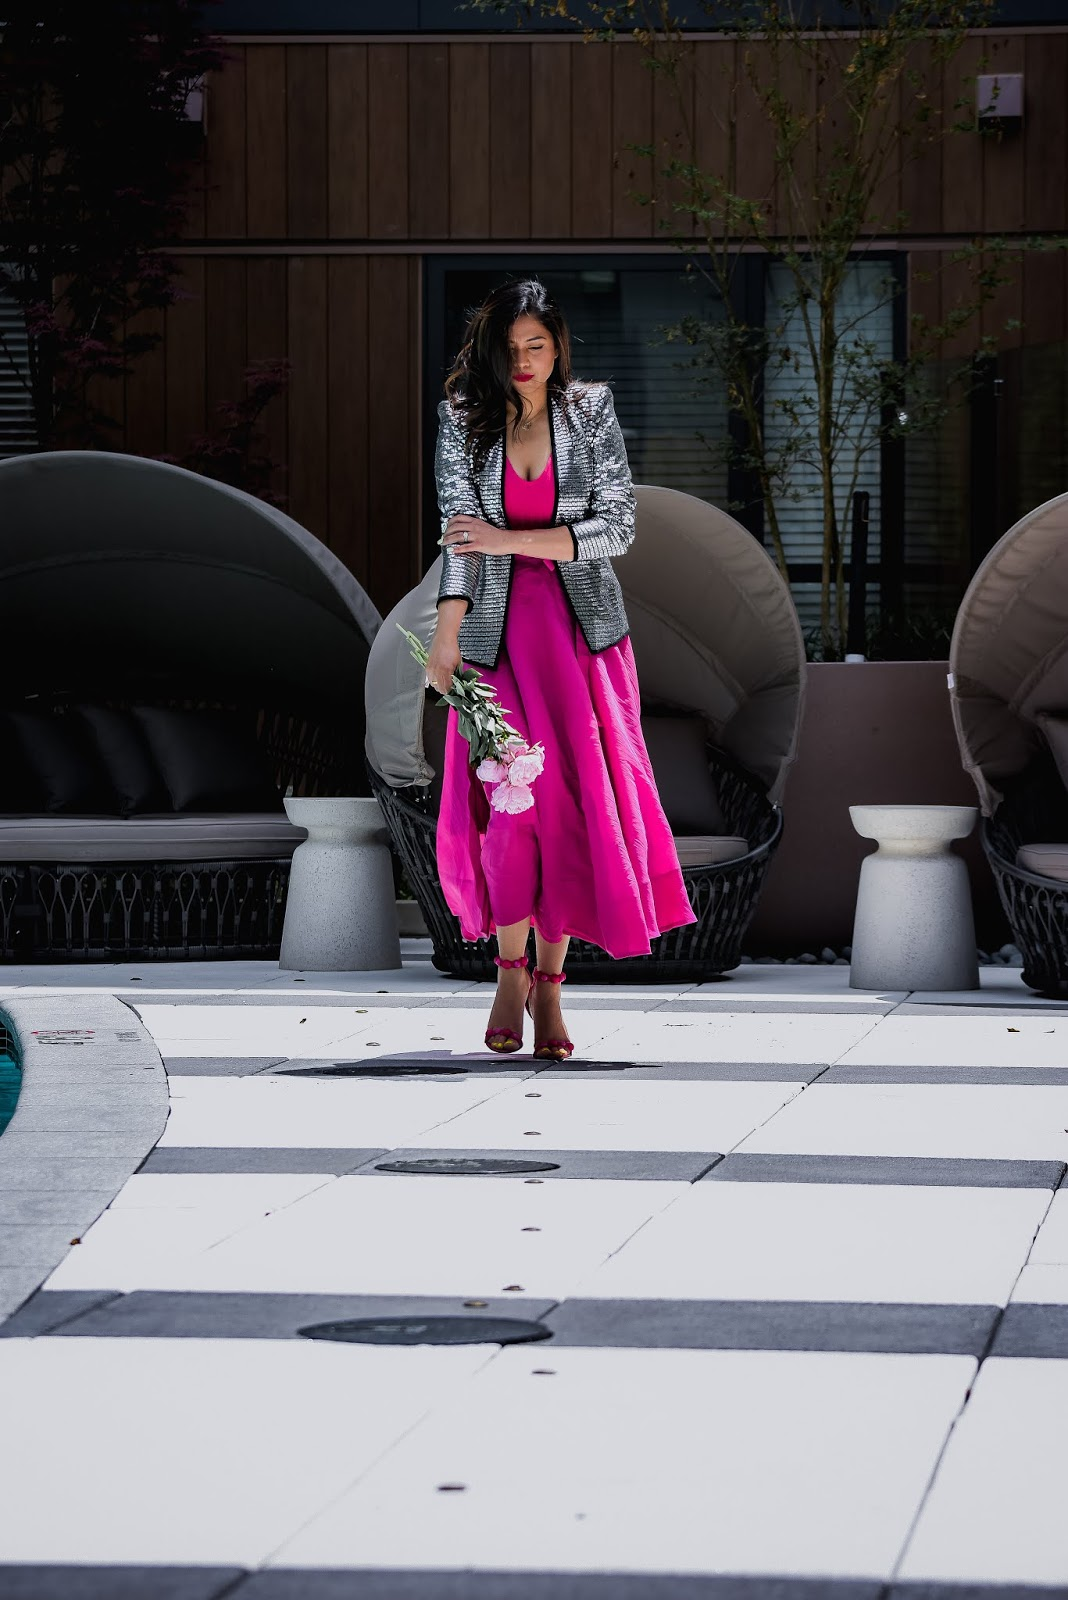 pink on pink outfit, metallic silver jacket, statement party jacket, wedding outfit, wedding guest, portrait photography, dc blogger, street style Hm ponk skirt, myriad musings, saumya shiohare